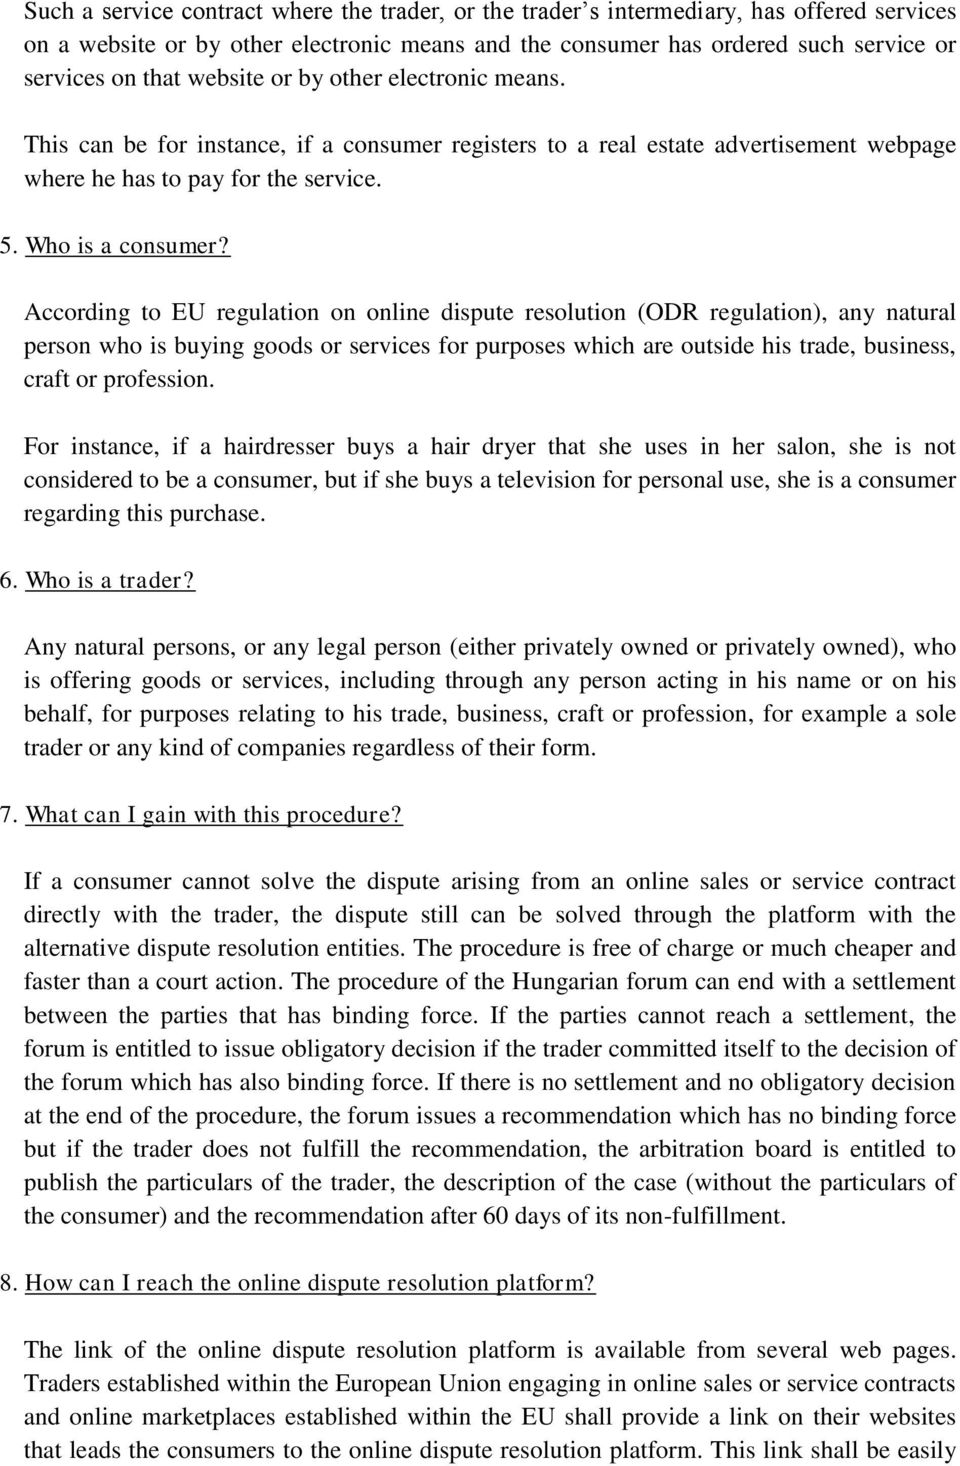 According to EU regulation on online dispute resolution (ODR regulation), any natural person who is buying goods or services for purposes which are outside his trade, business, craft or profession.